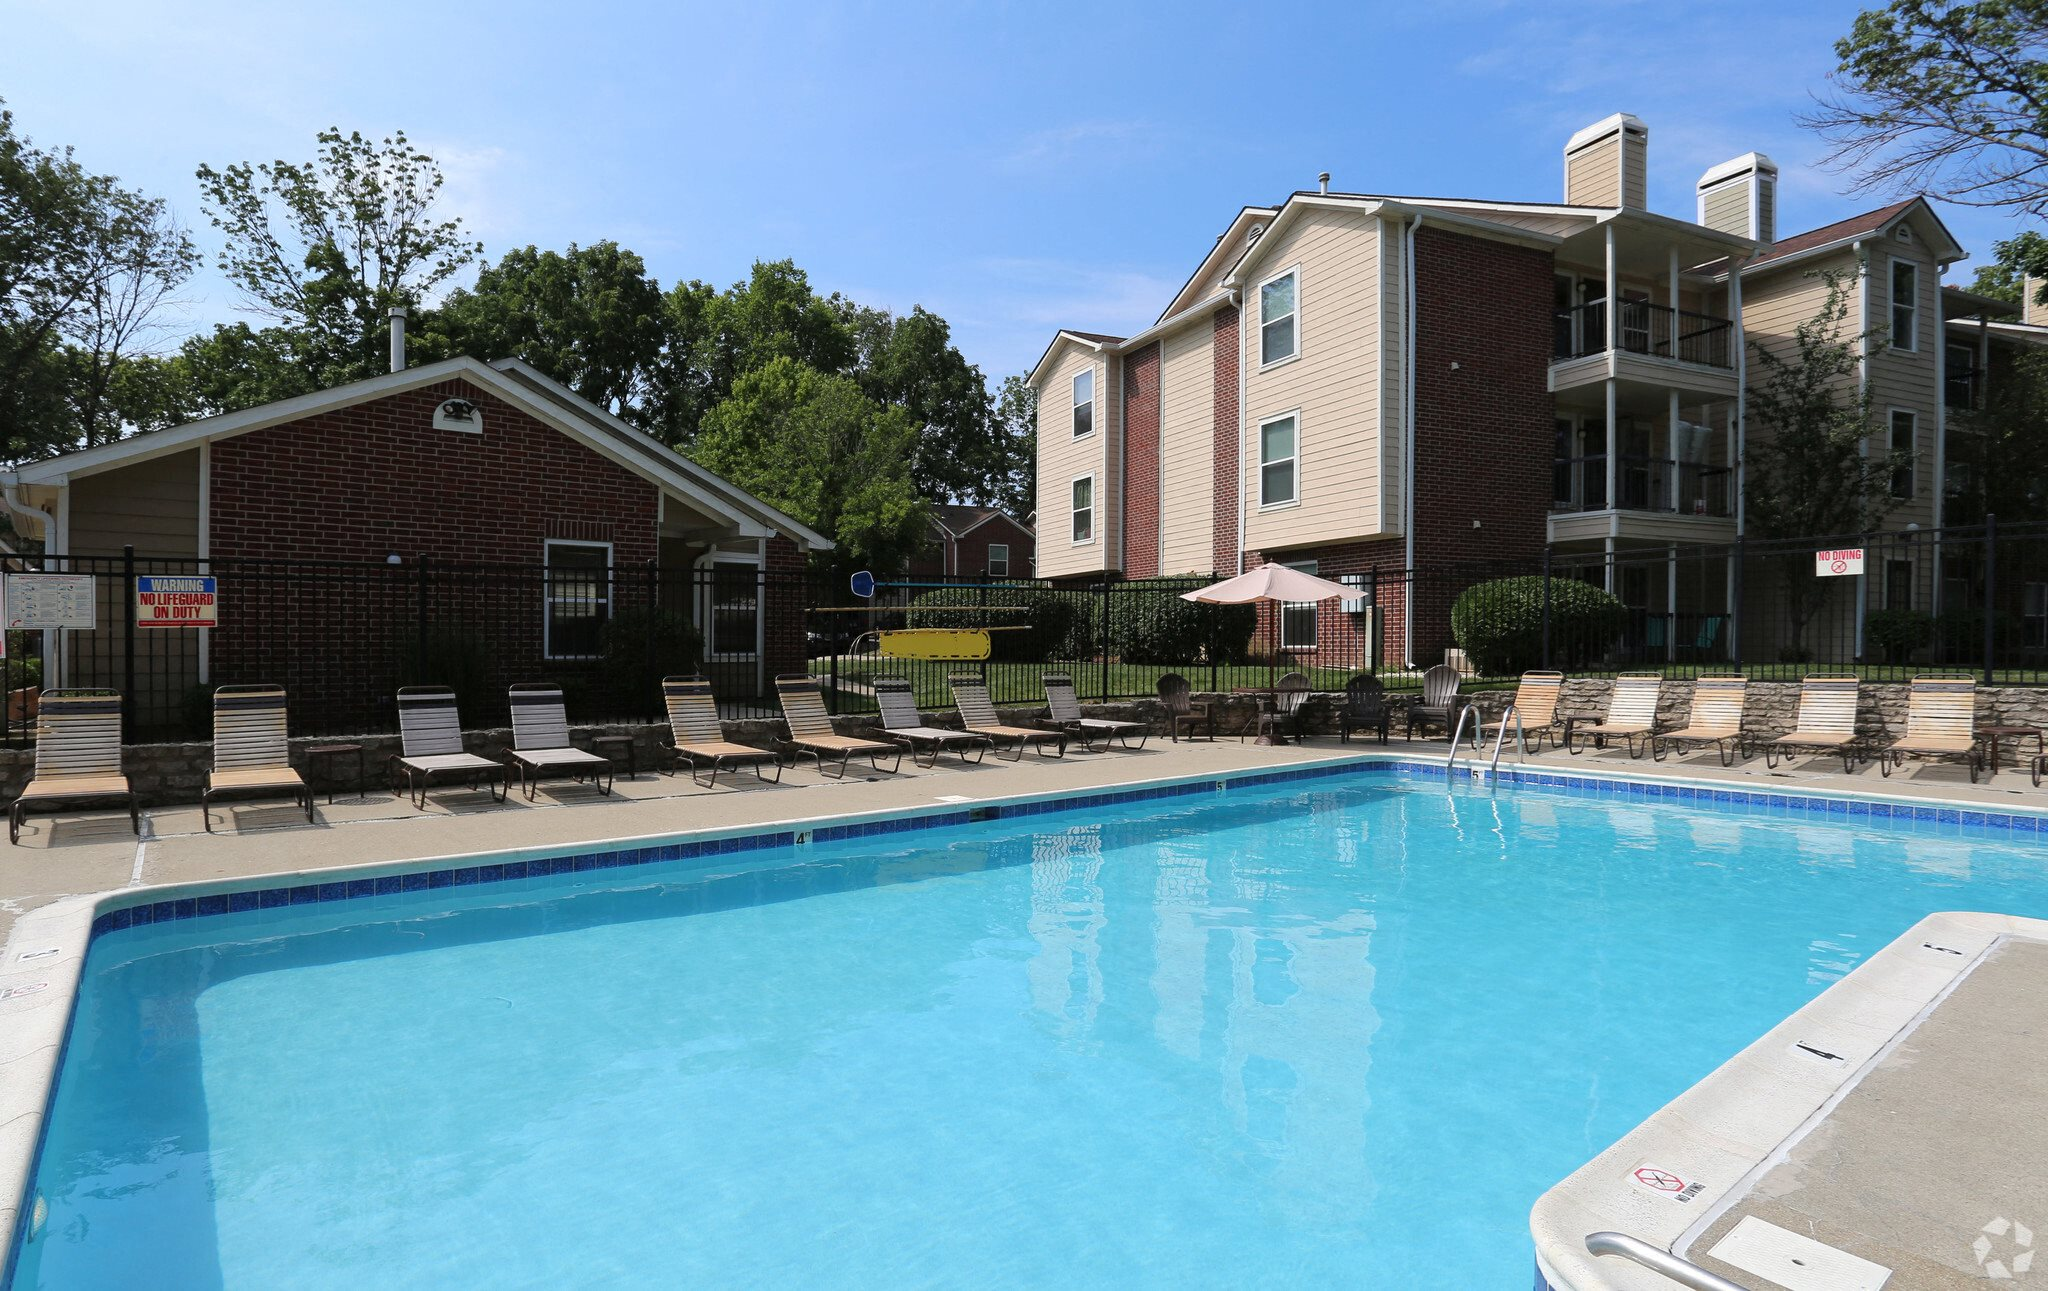 swimming pool at apartments in Kettering, Ohio